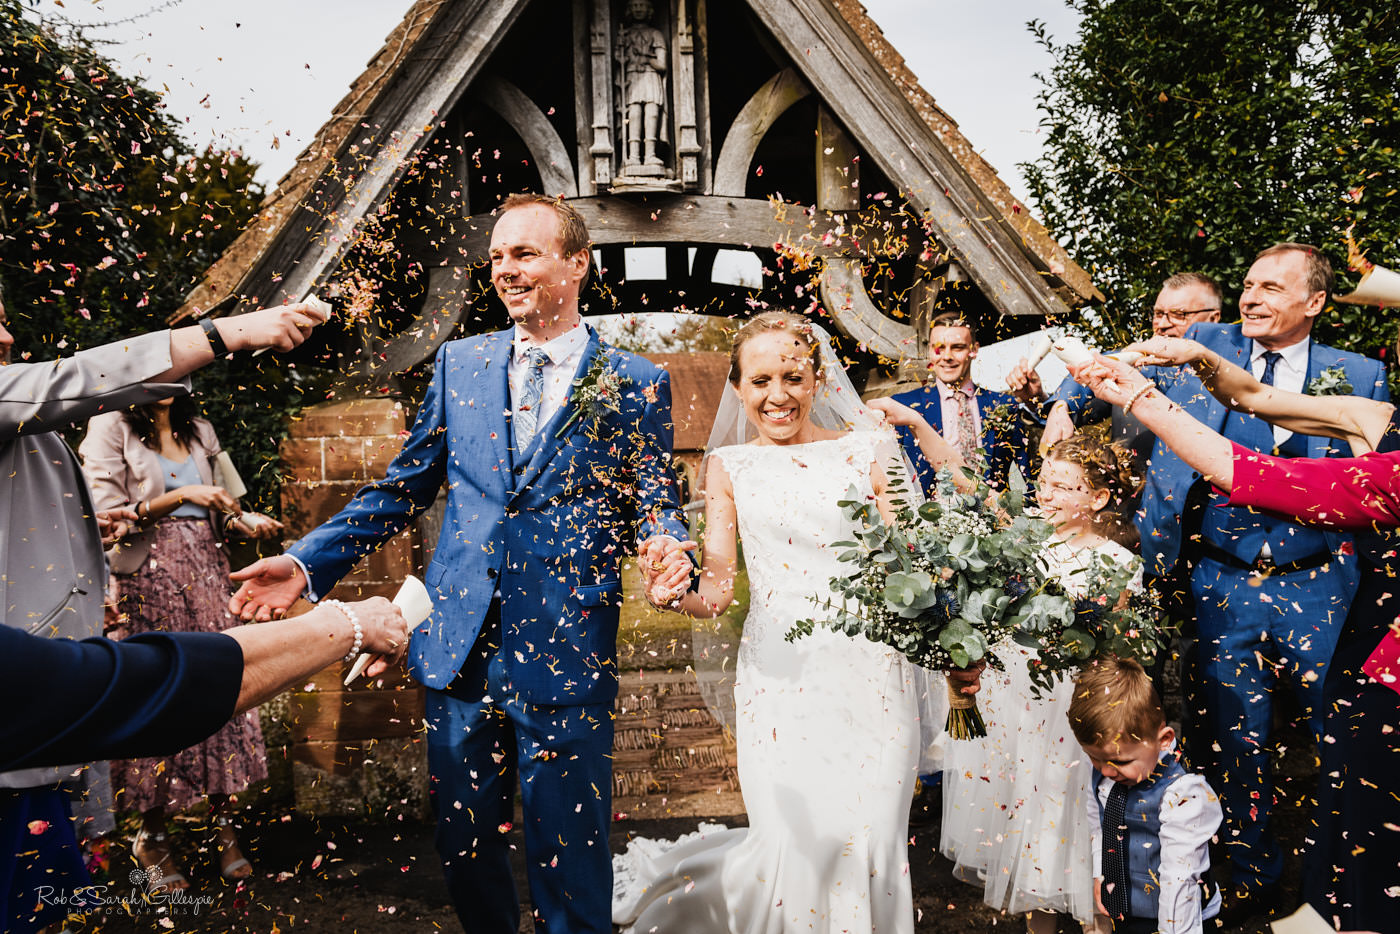 Wedding confetti throw at St Kenelm's church Worcestershire